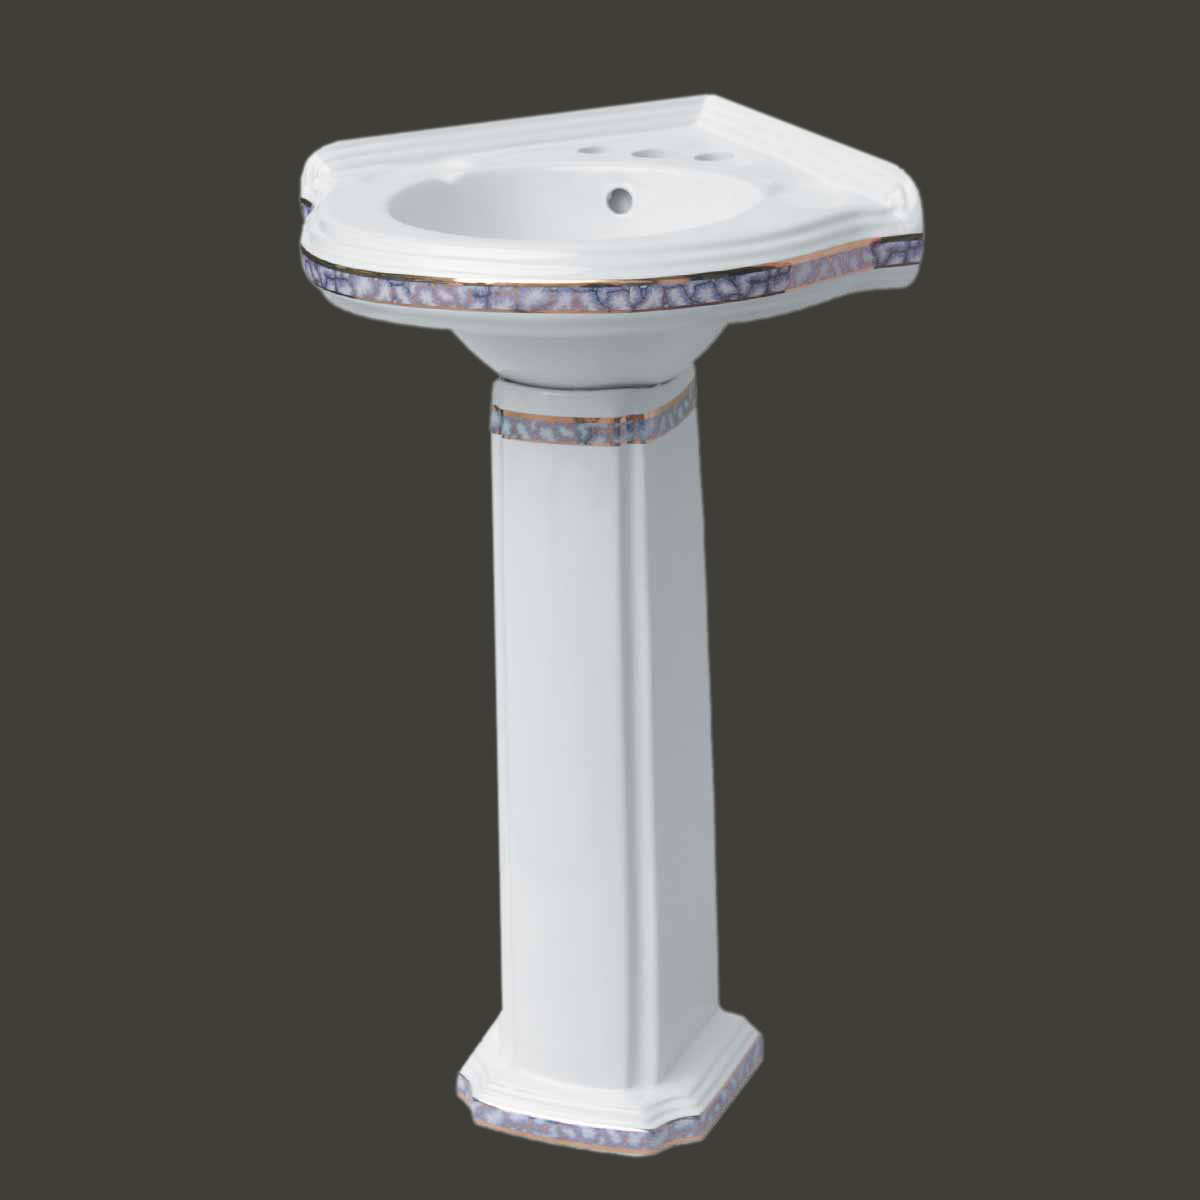 Corner Sink Pedestal : Bathroom Corner Pedestal Sink White China Gold Trim